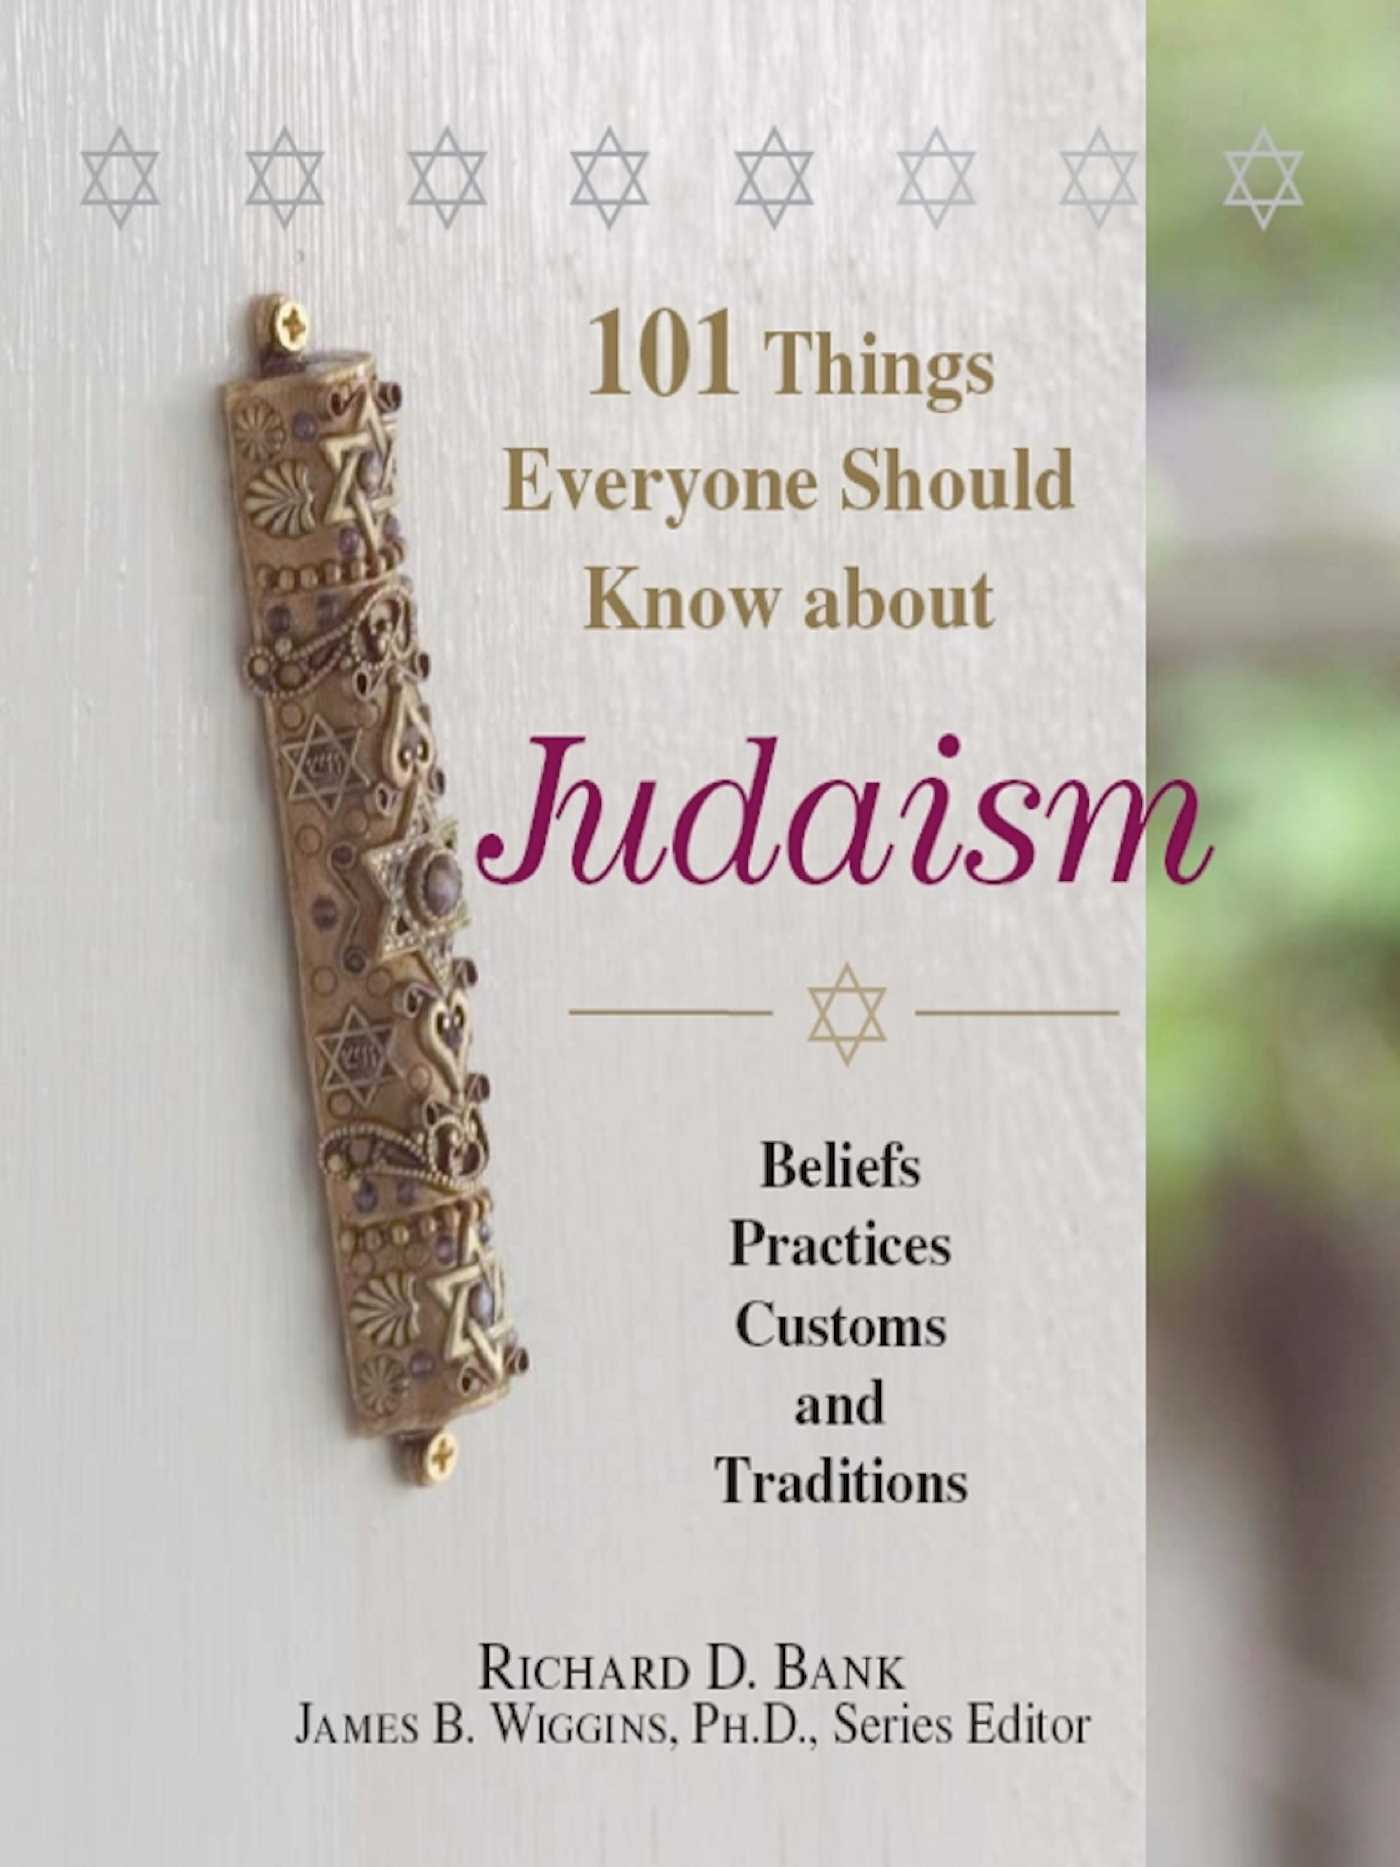 101 things everyone should know about judaism 9781440518645 hr